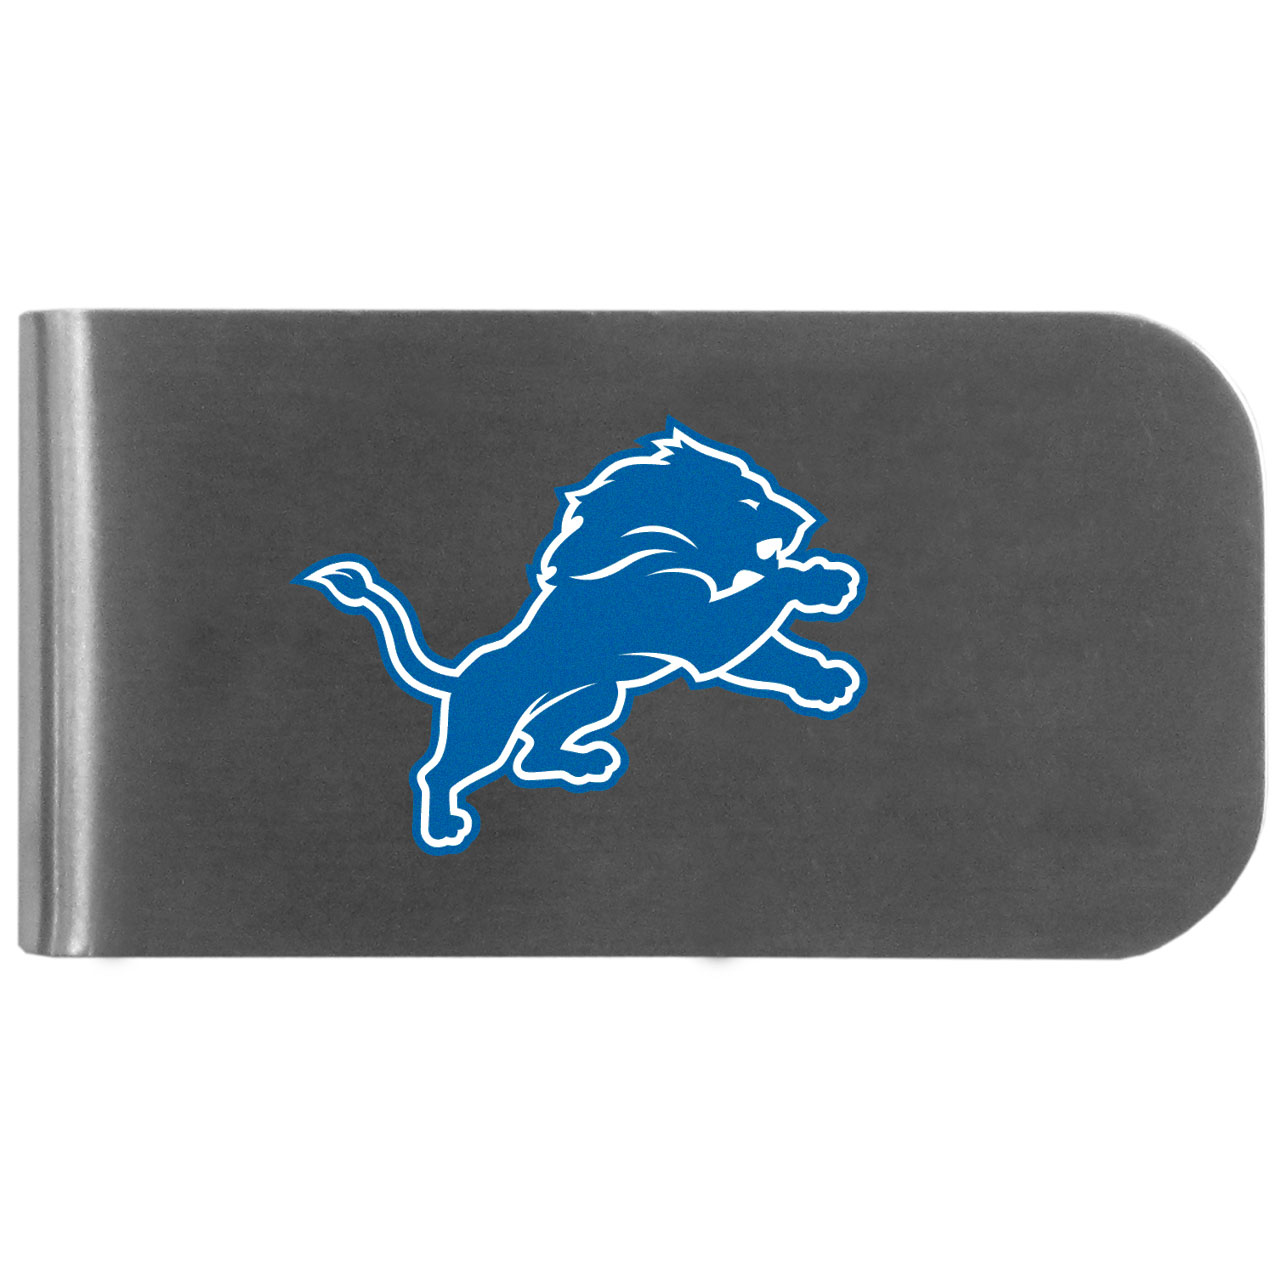 Detroit Lions Logo Bottle Opener Money Clip - This unique money clip features a classic, brushed-metal finish with a handy bottle opener feature on the back. The clip has the Detroit Lions logo expertly printed on the front of the clip.